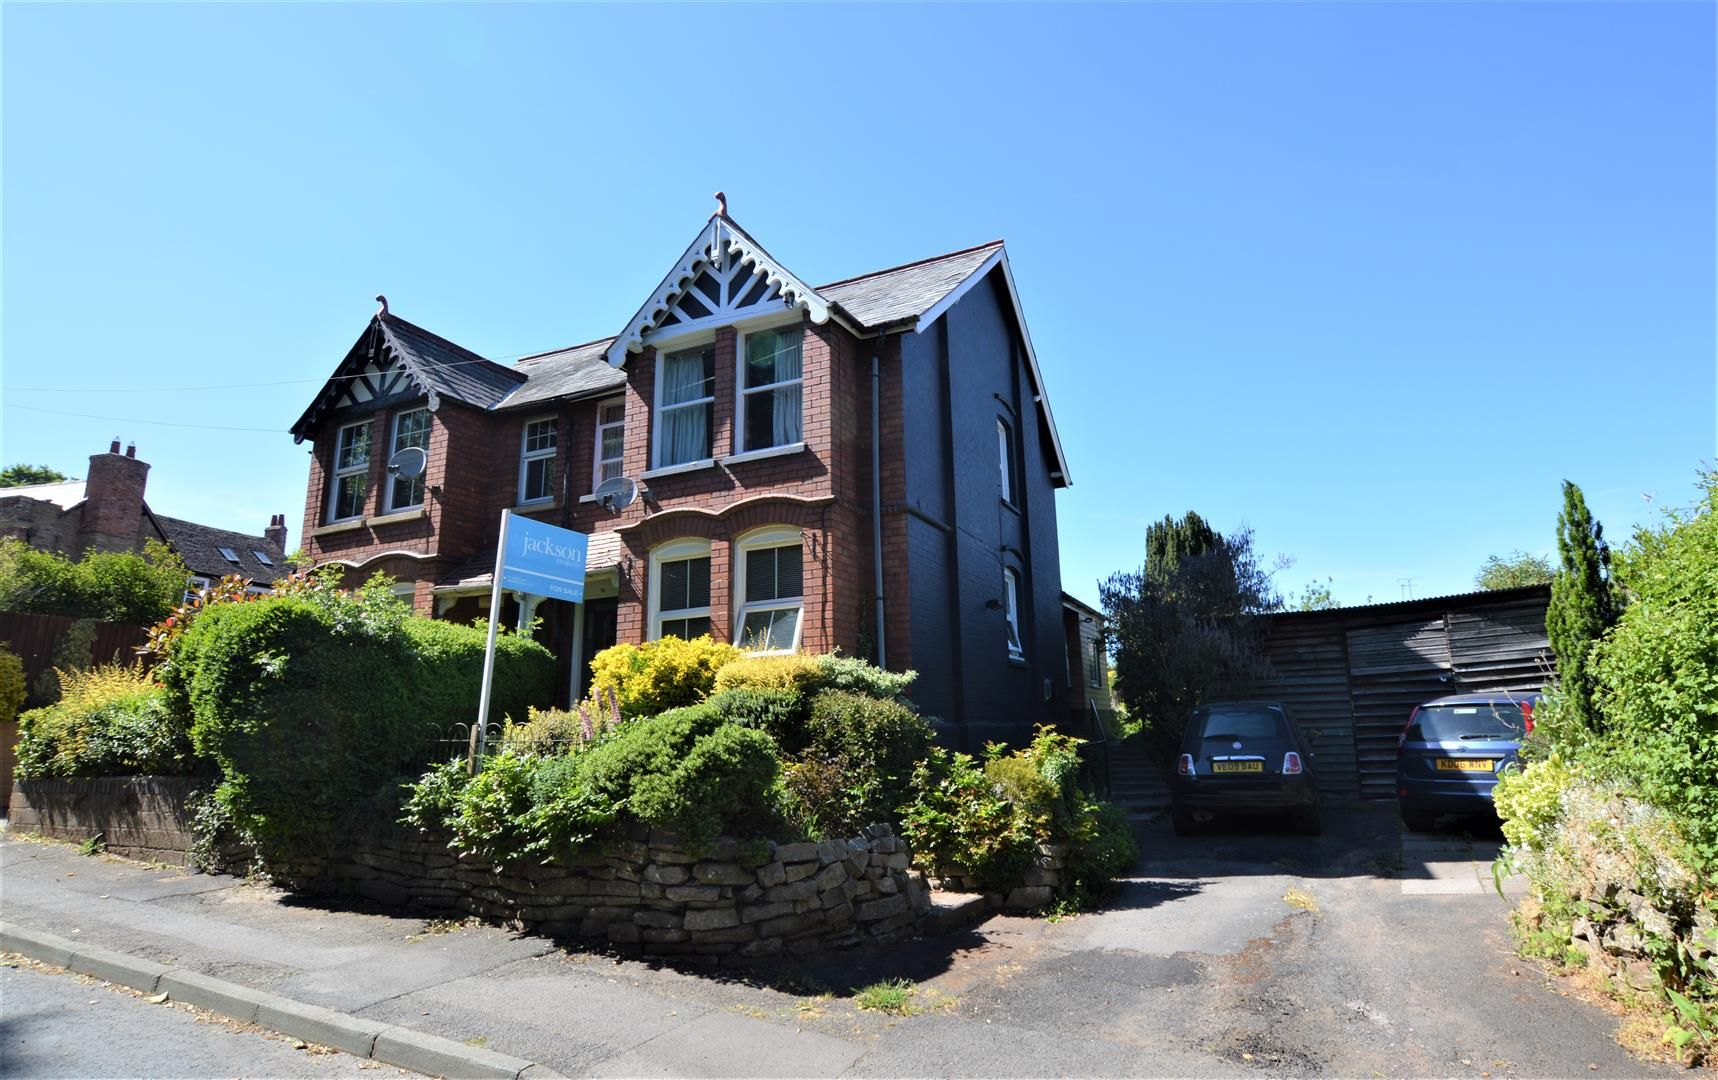 2 bed semi-detached for sale in Bromyard - Property Image 1